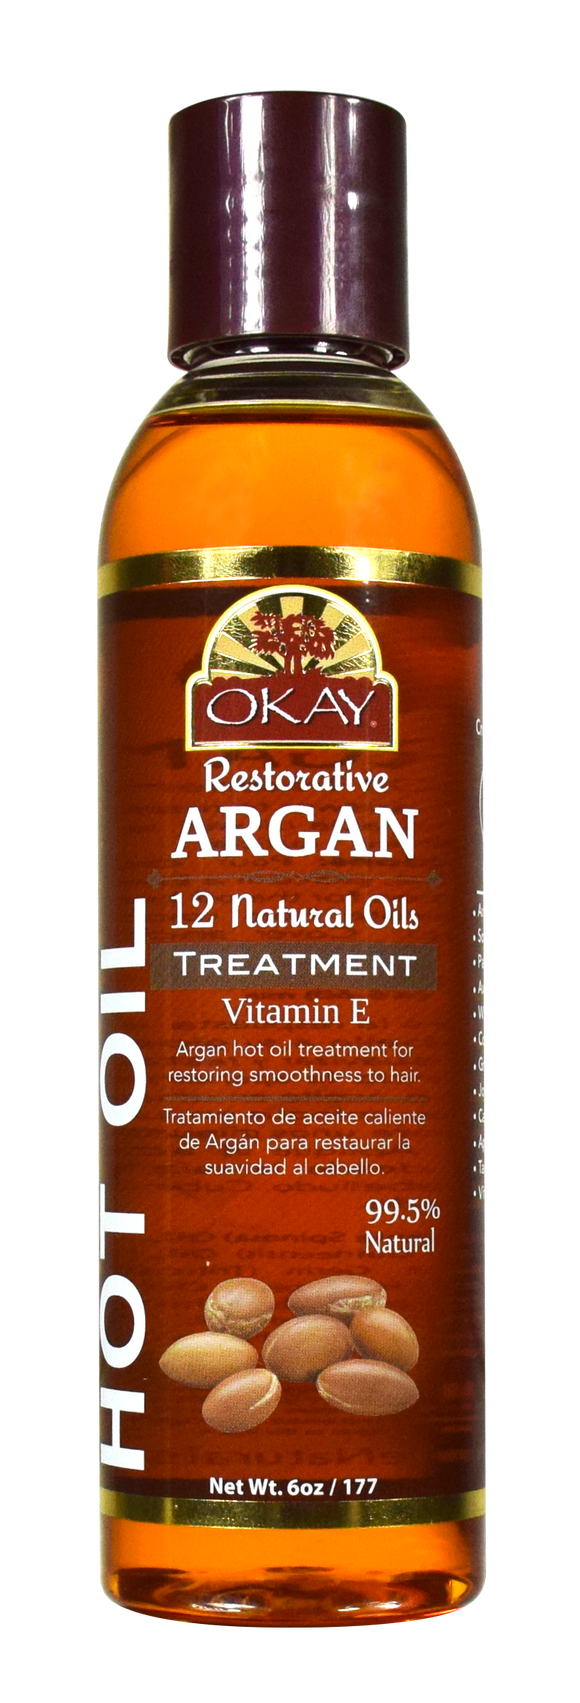 Okay Argan Oil Hot Oil Treatment, 6 Oz